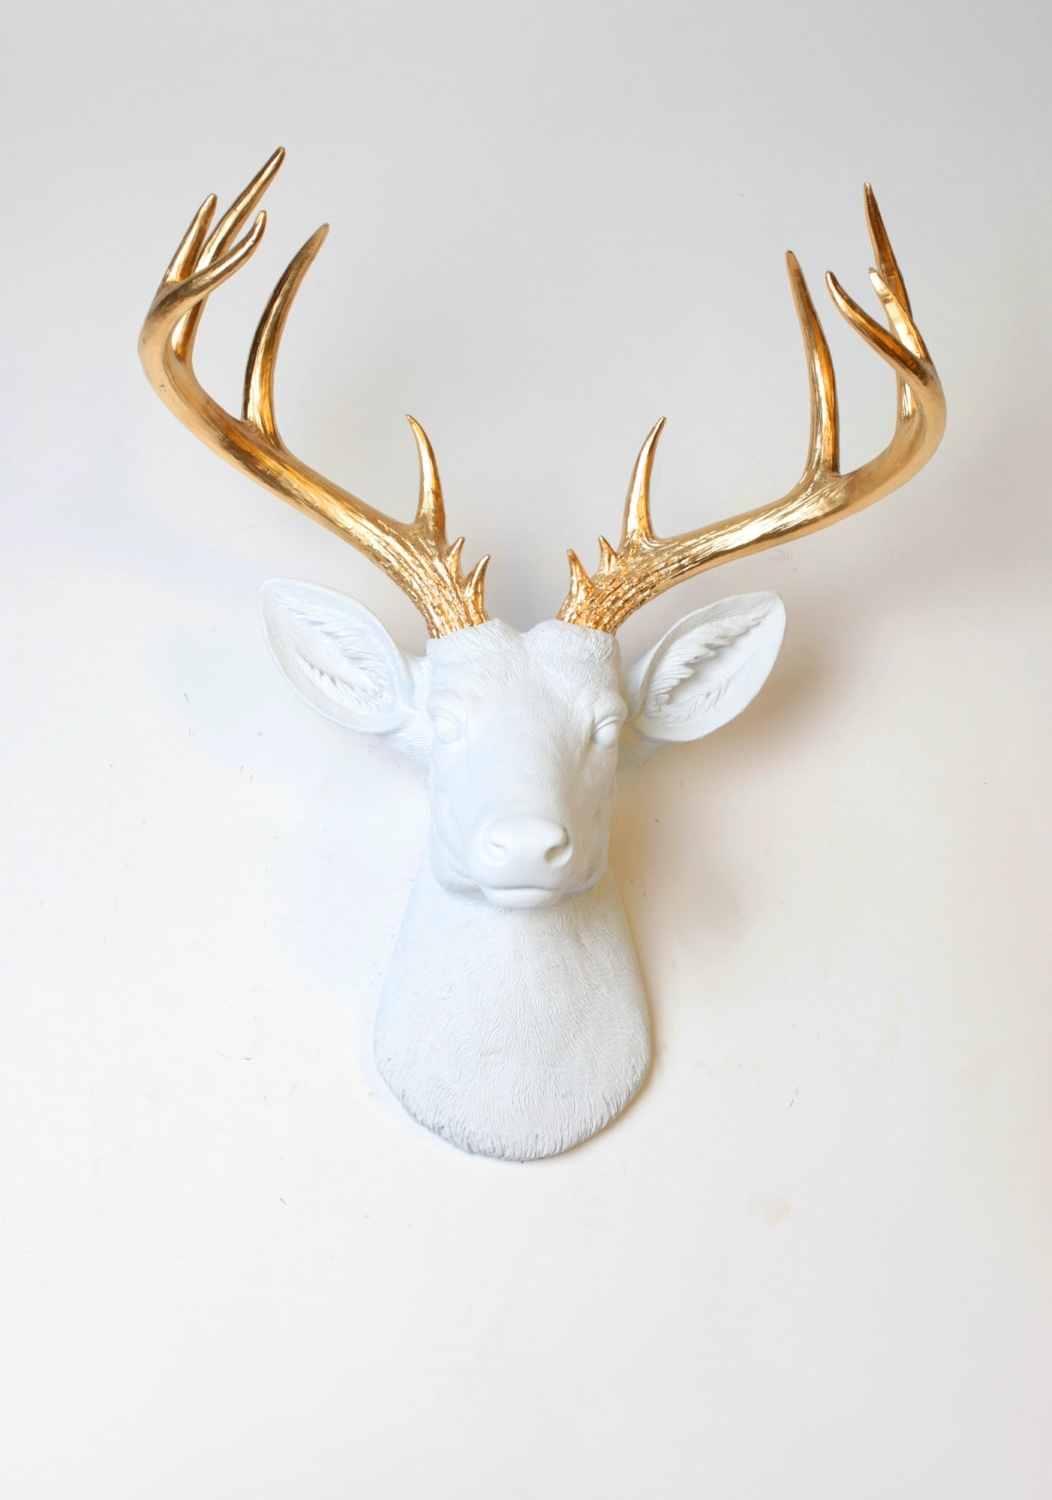 Deer Head Wall Mount Decor – The Xl Alfred – White And Gold Deer Intended For Most Popular Metal Animal Heads Wall Art (View 3 of 15)